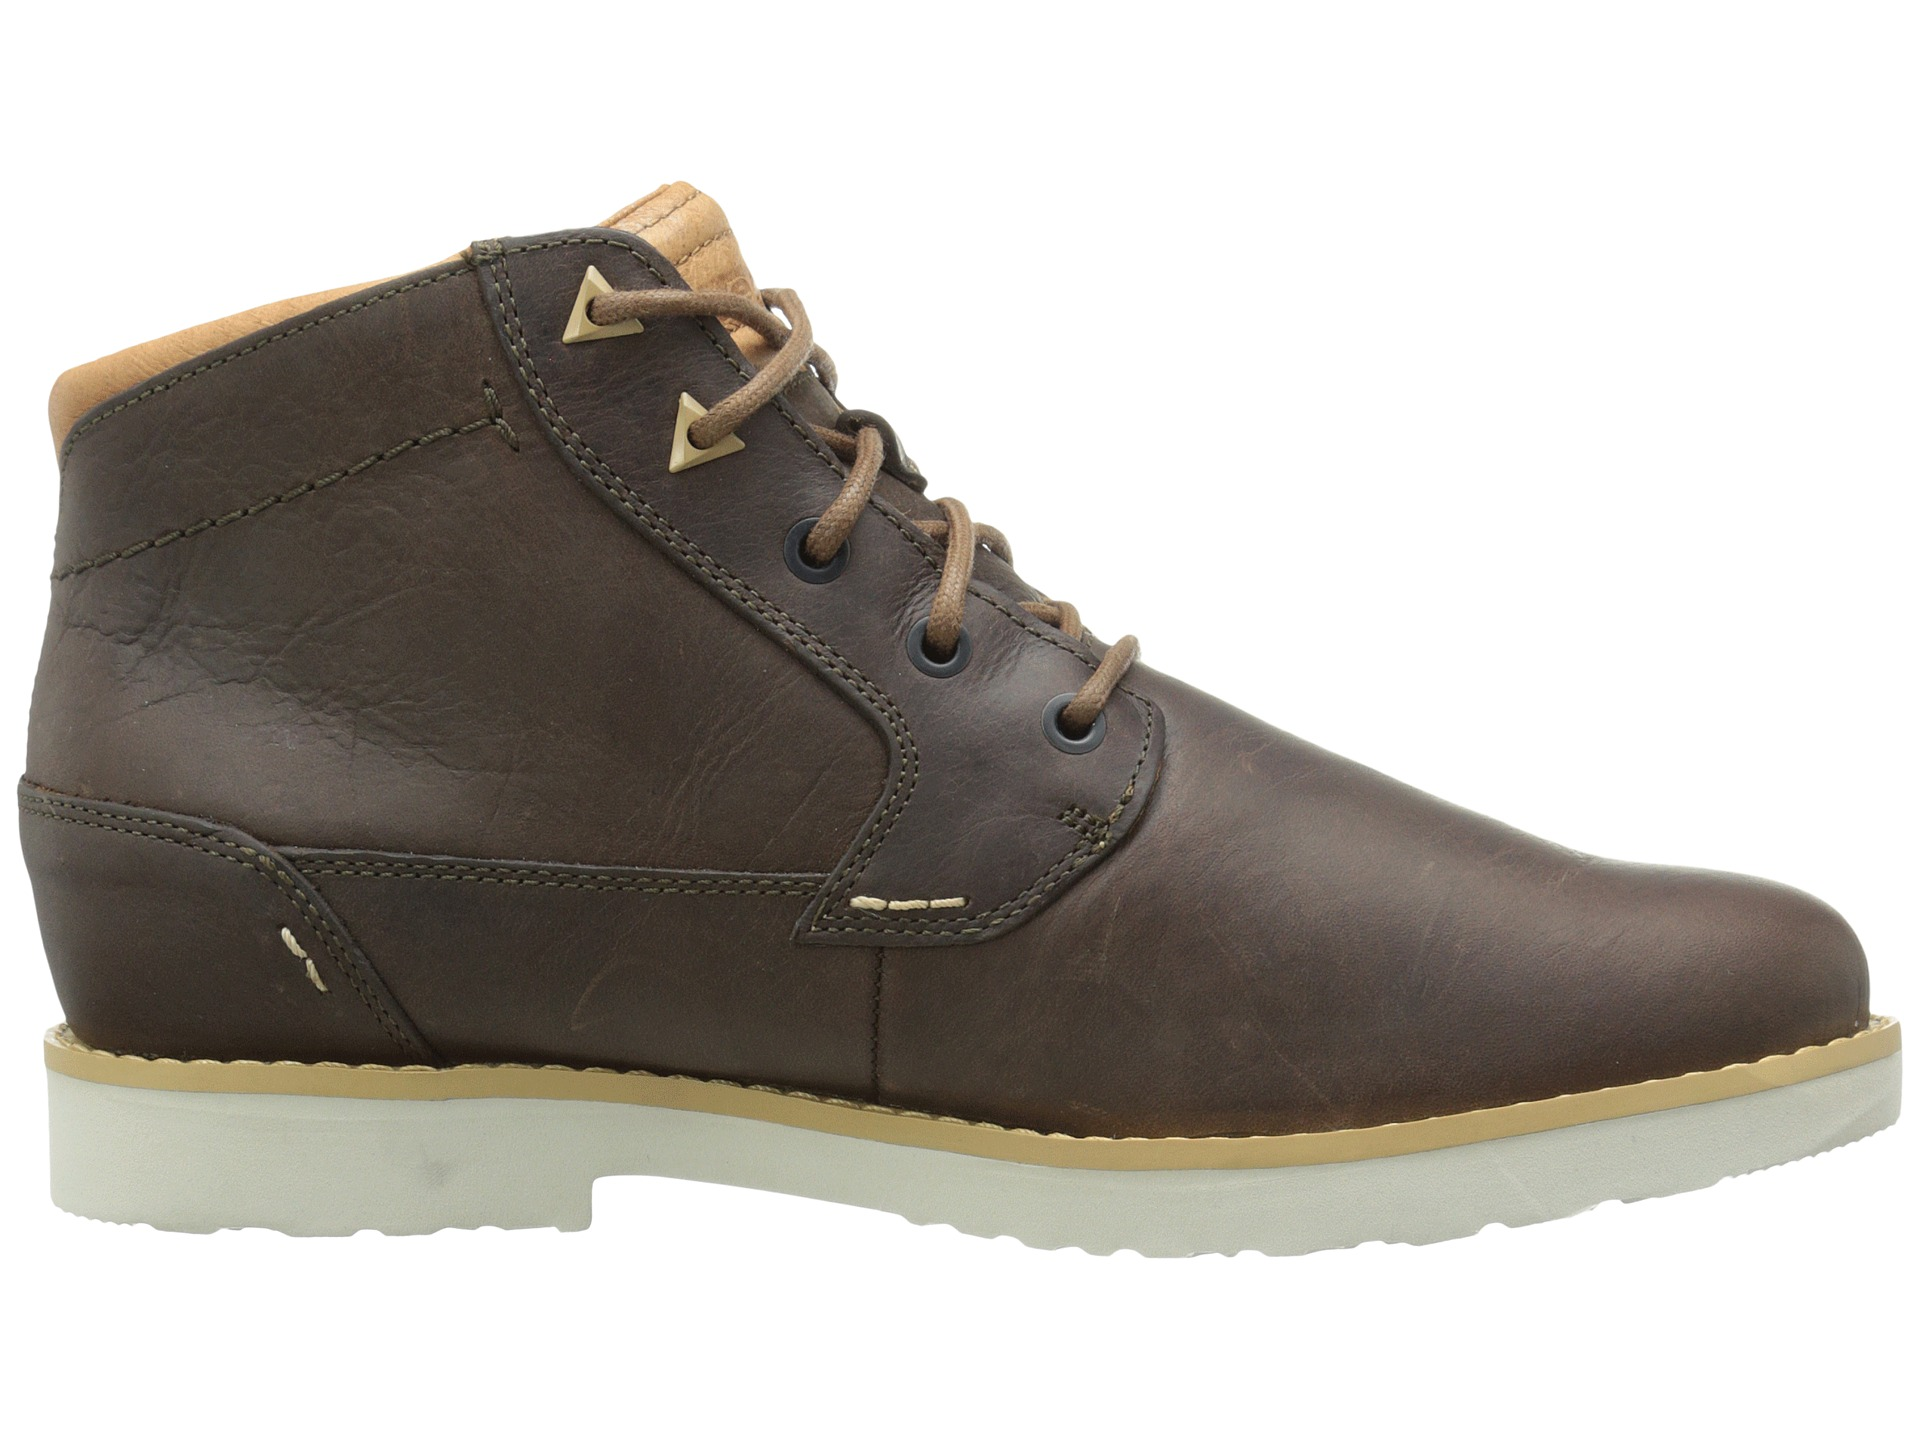 a5e6b24ab21 Ugg Boots Durban South Africa